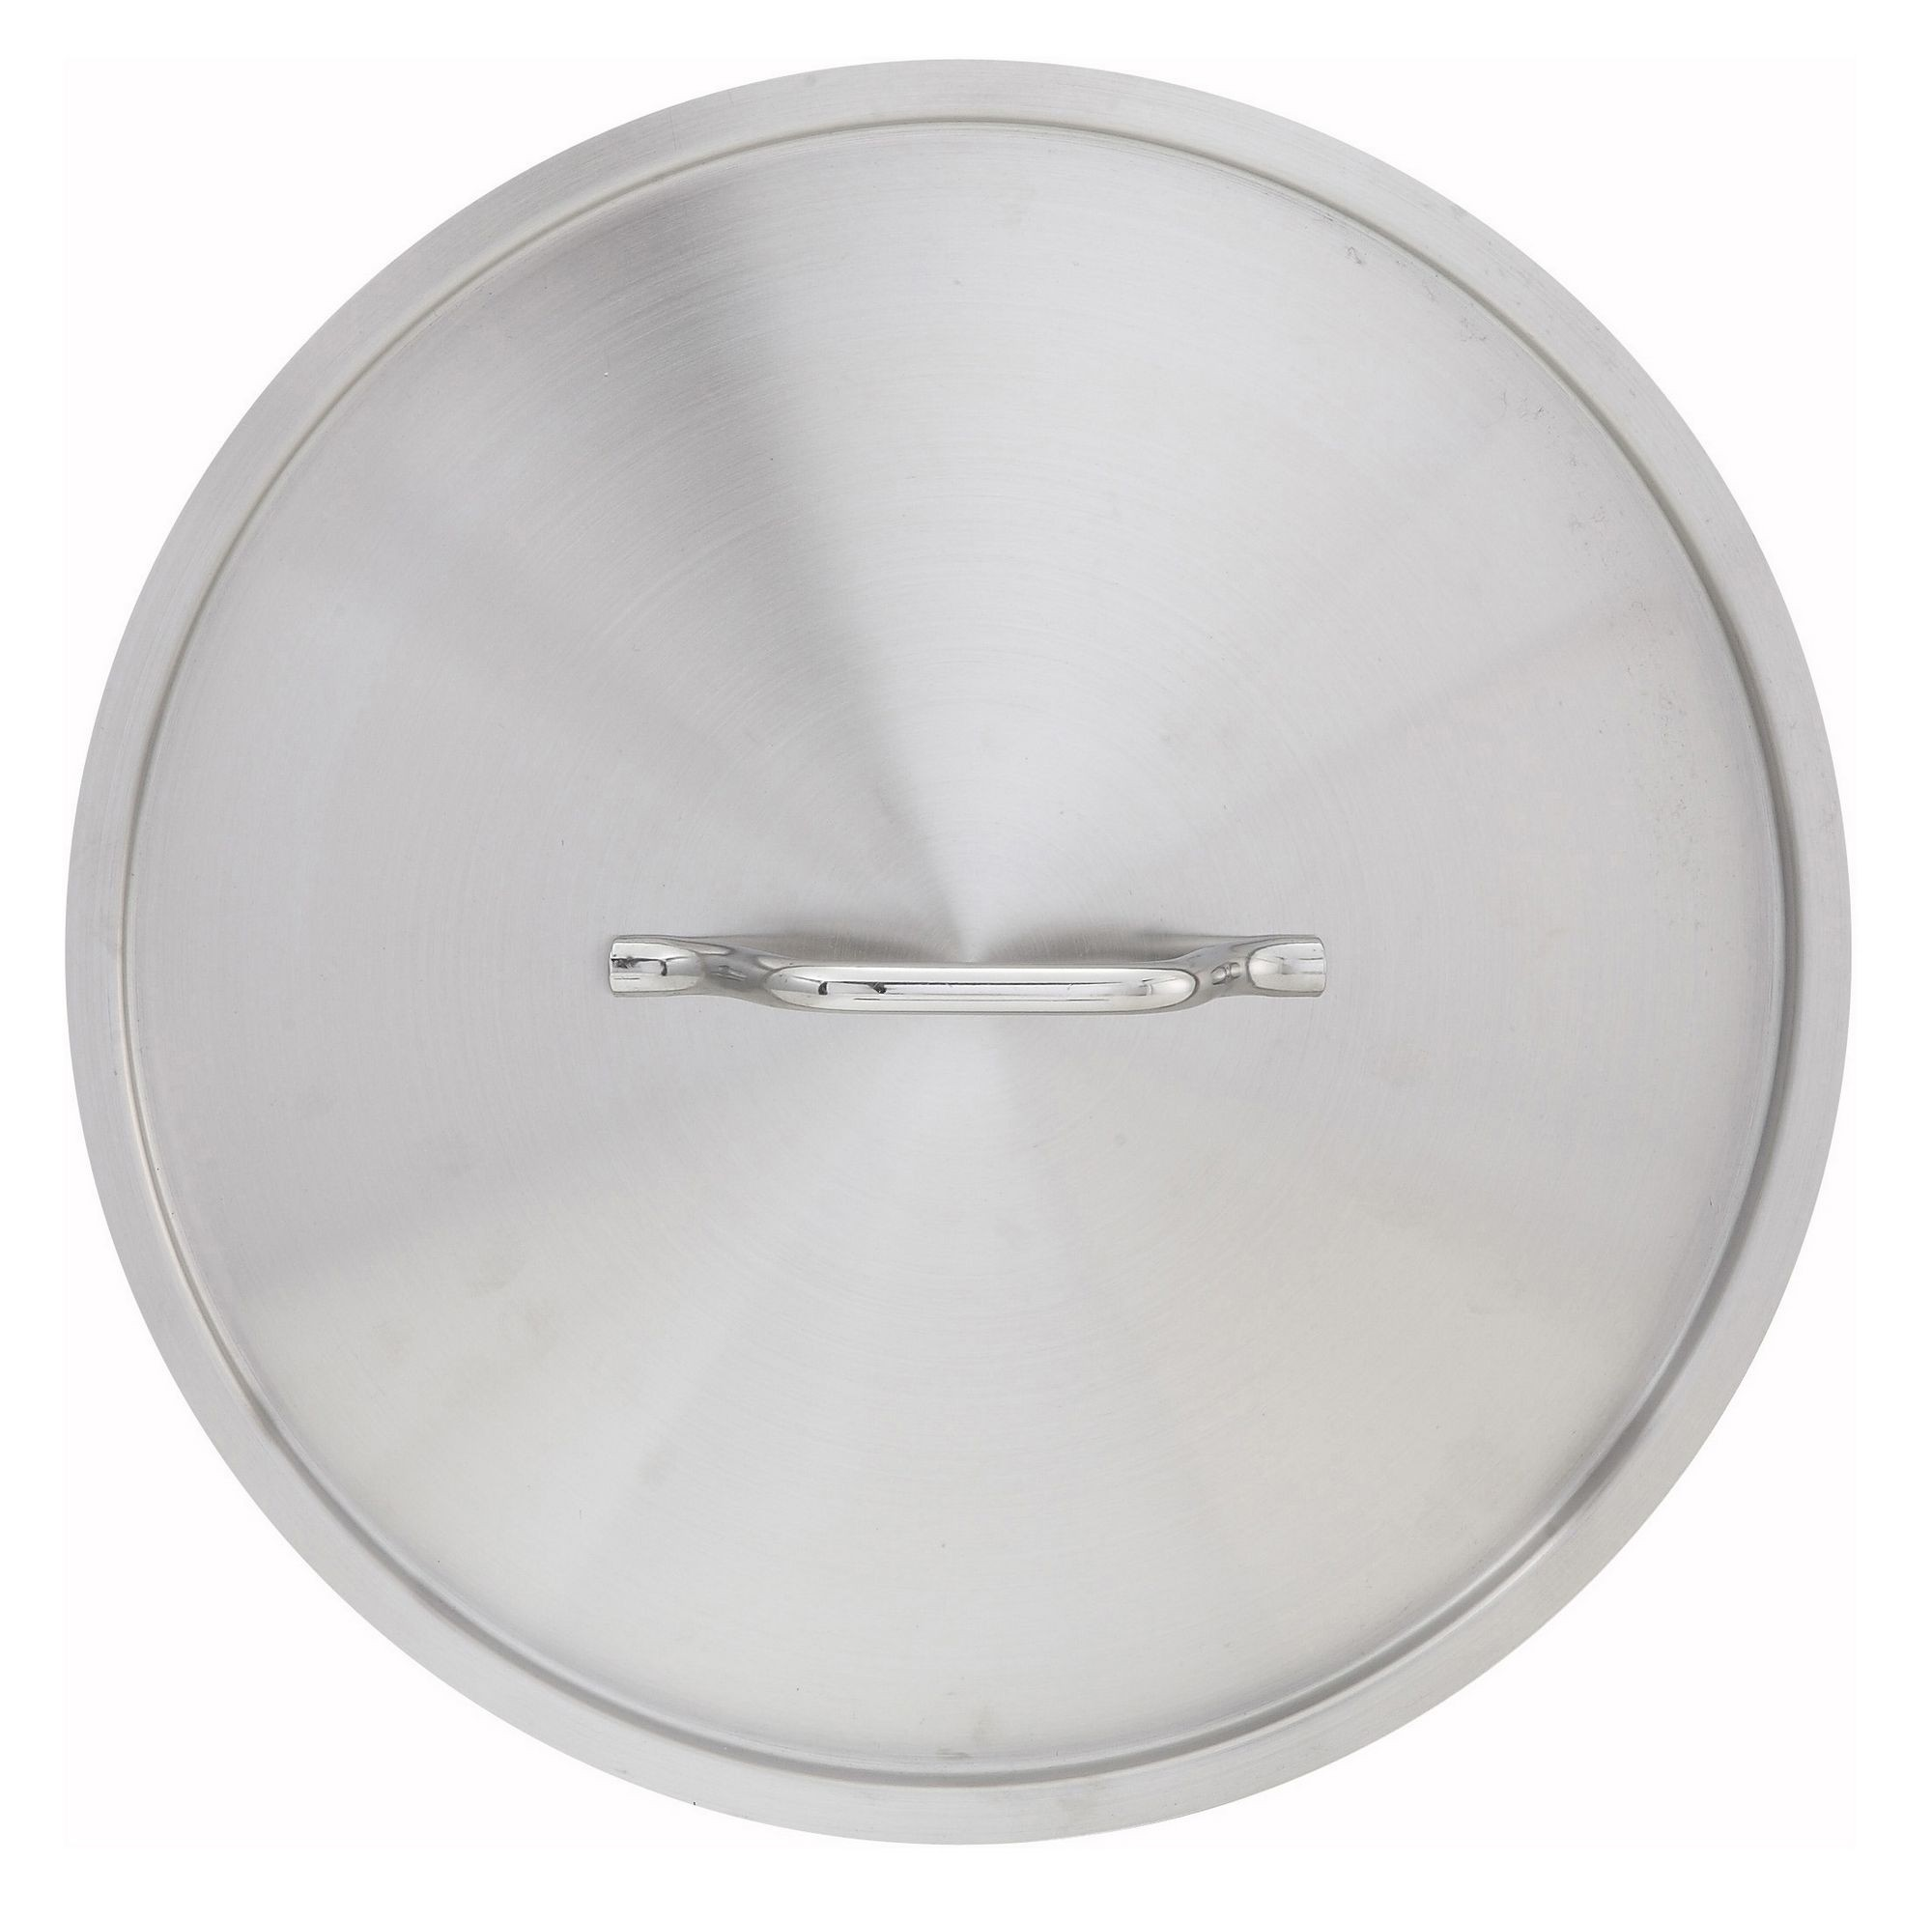 Stainless Steel Cover For 2-Qt Sauce Pan (SSSP-2)